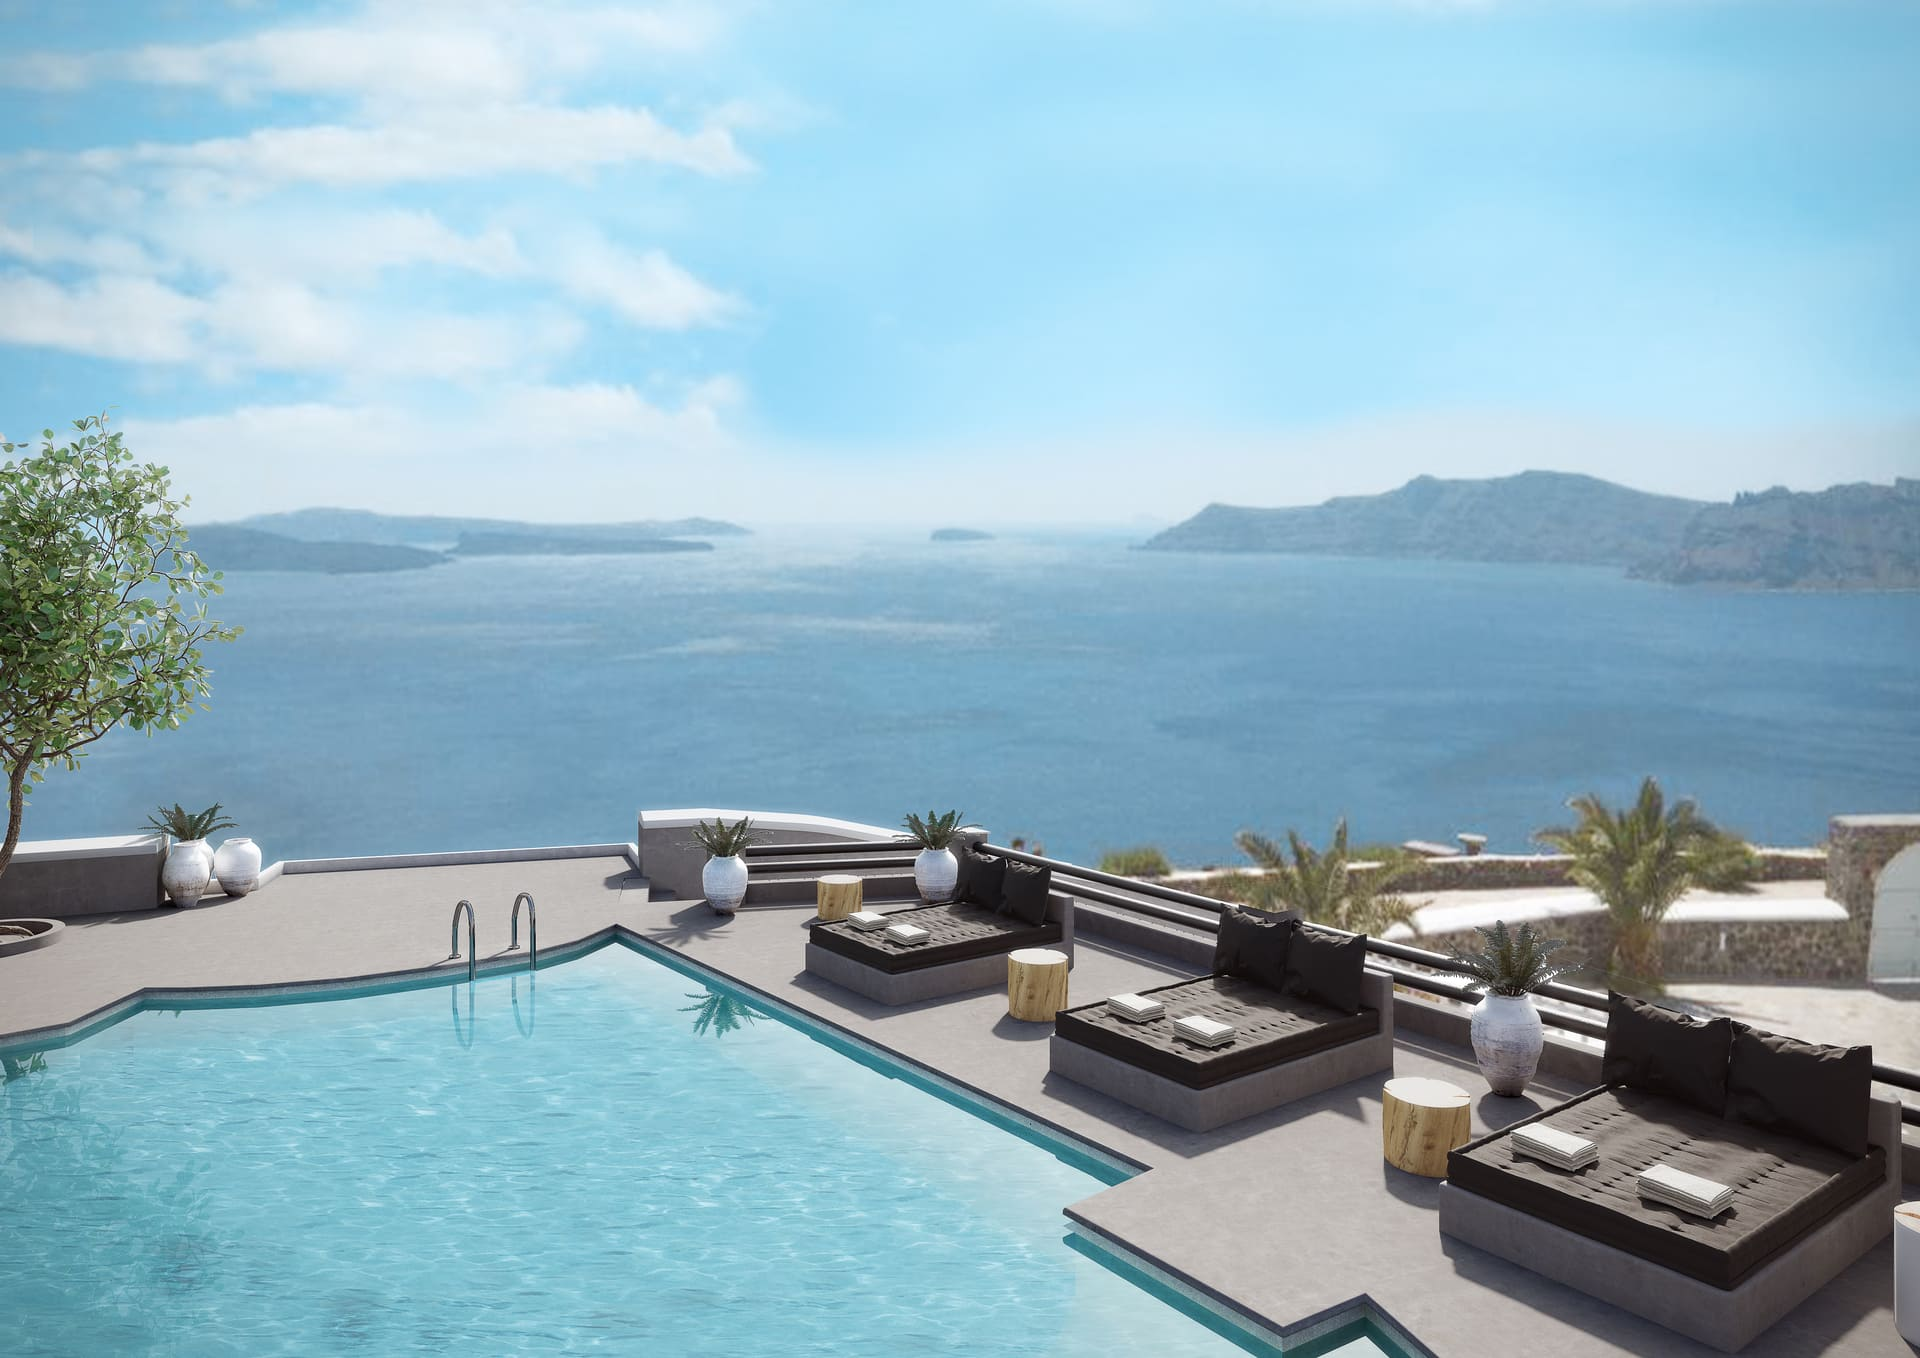 Mr & Mrs White Santorini First Look Offer Champagne All Inclusive – Up To 35% Off & Flexible Policy!